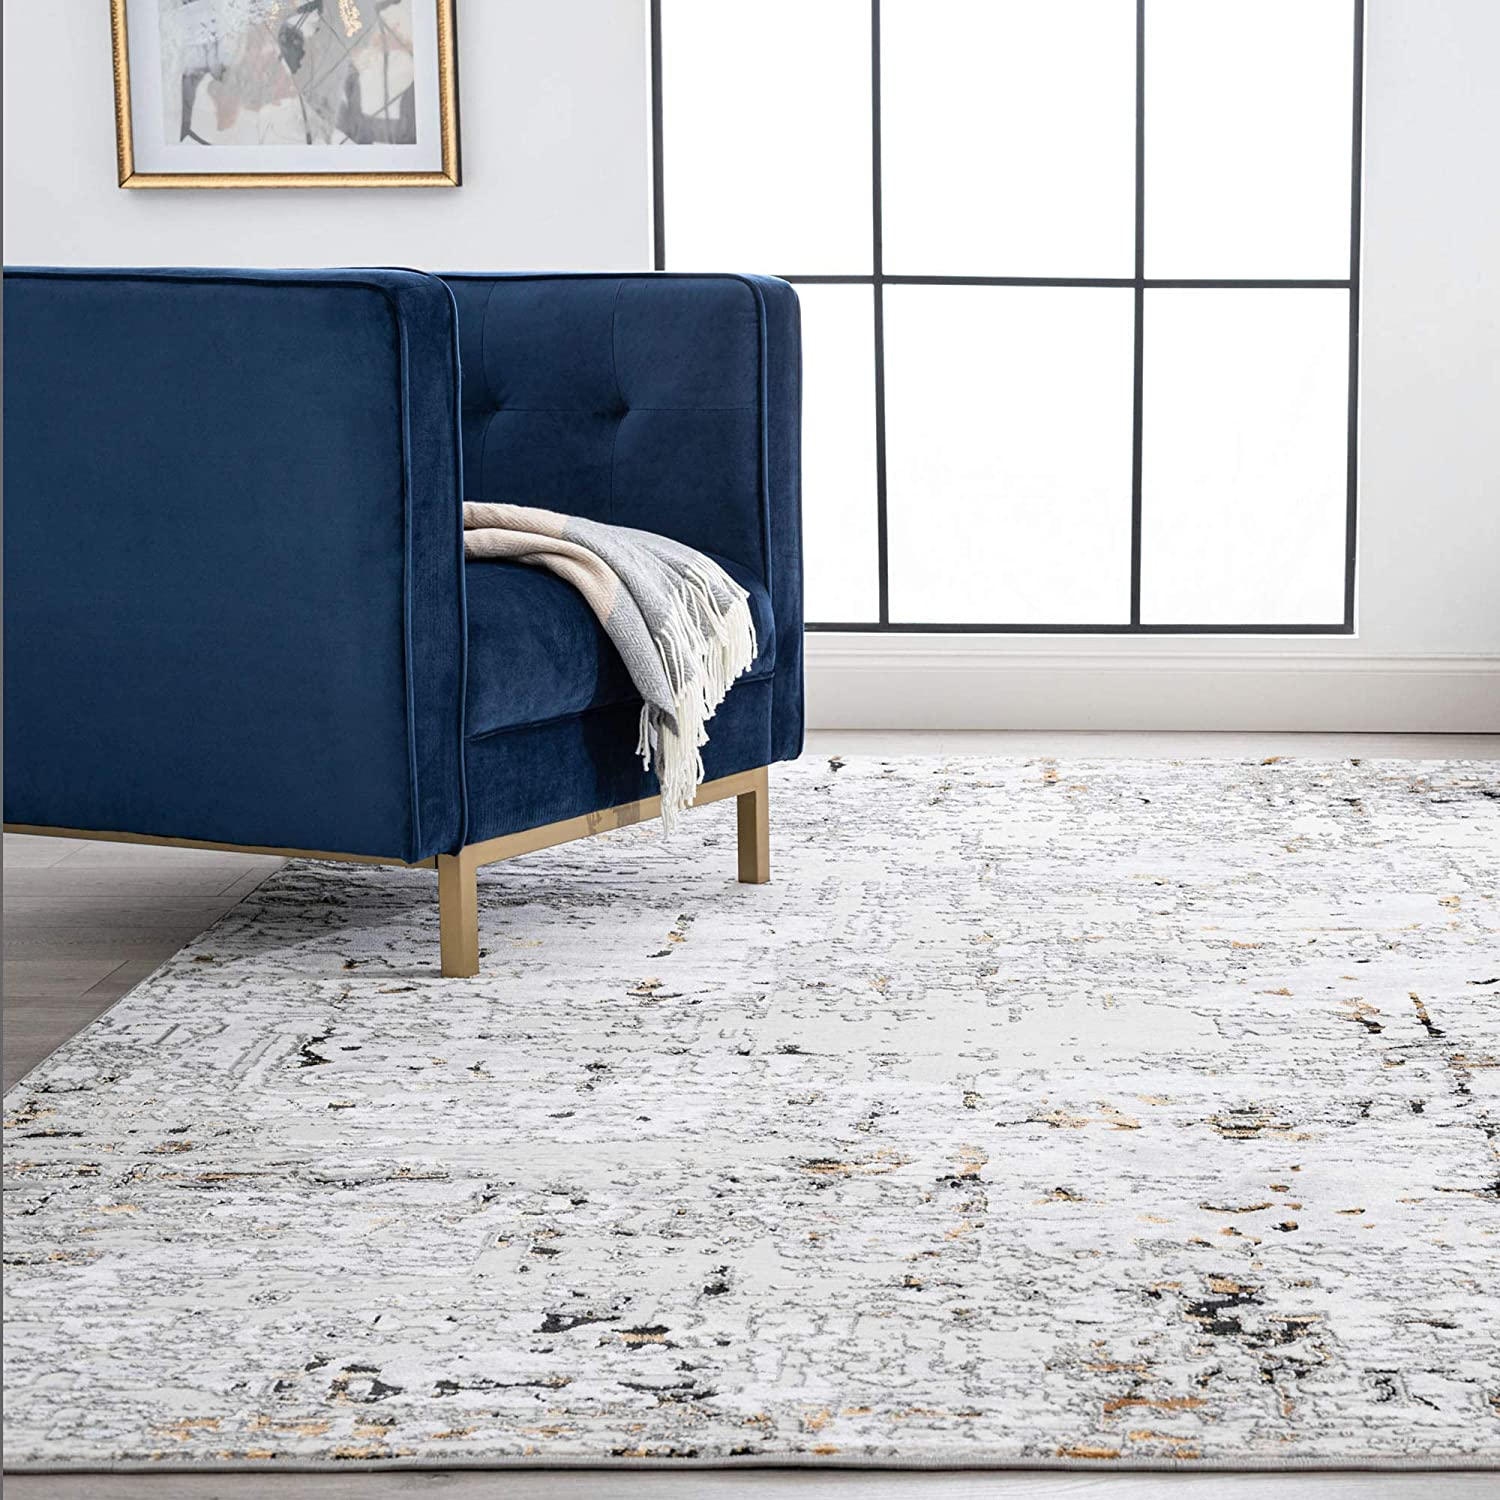 New product type Tayse Meridith Machine Washable Area Rug for OFFer Liv Rugs - 5x7